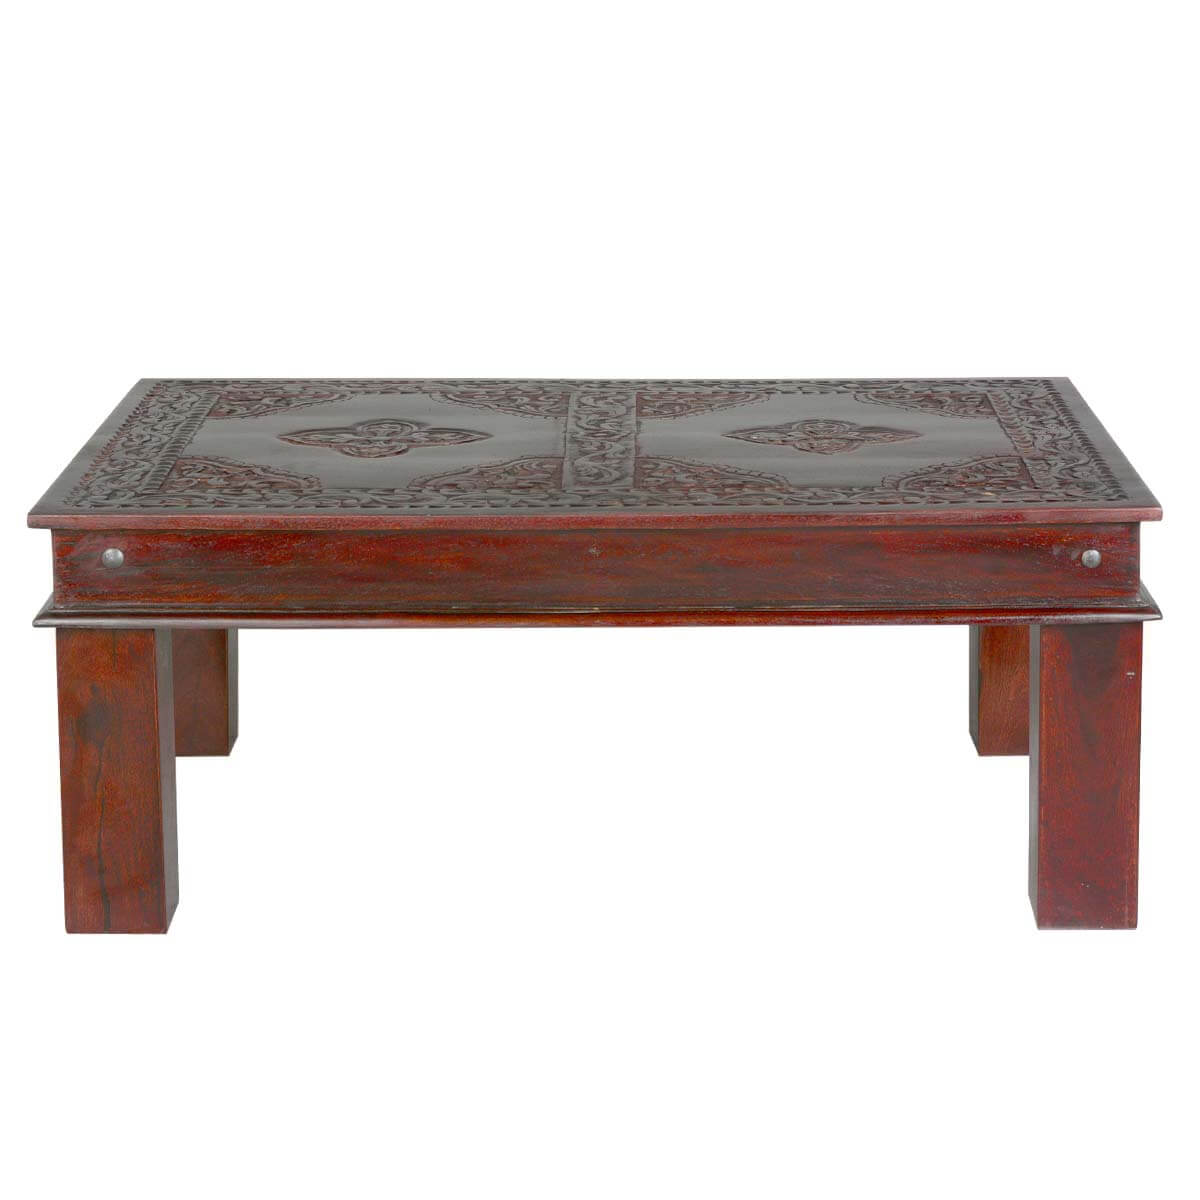 Asian Ornate Hand Carved Mango Wood Coffee Table